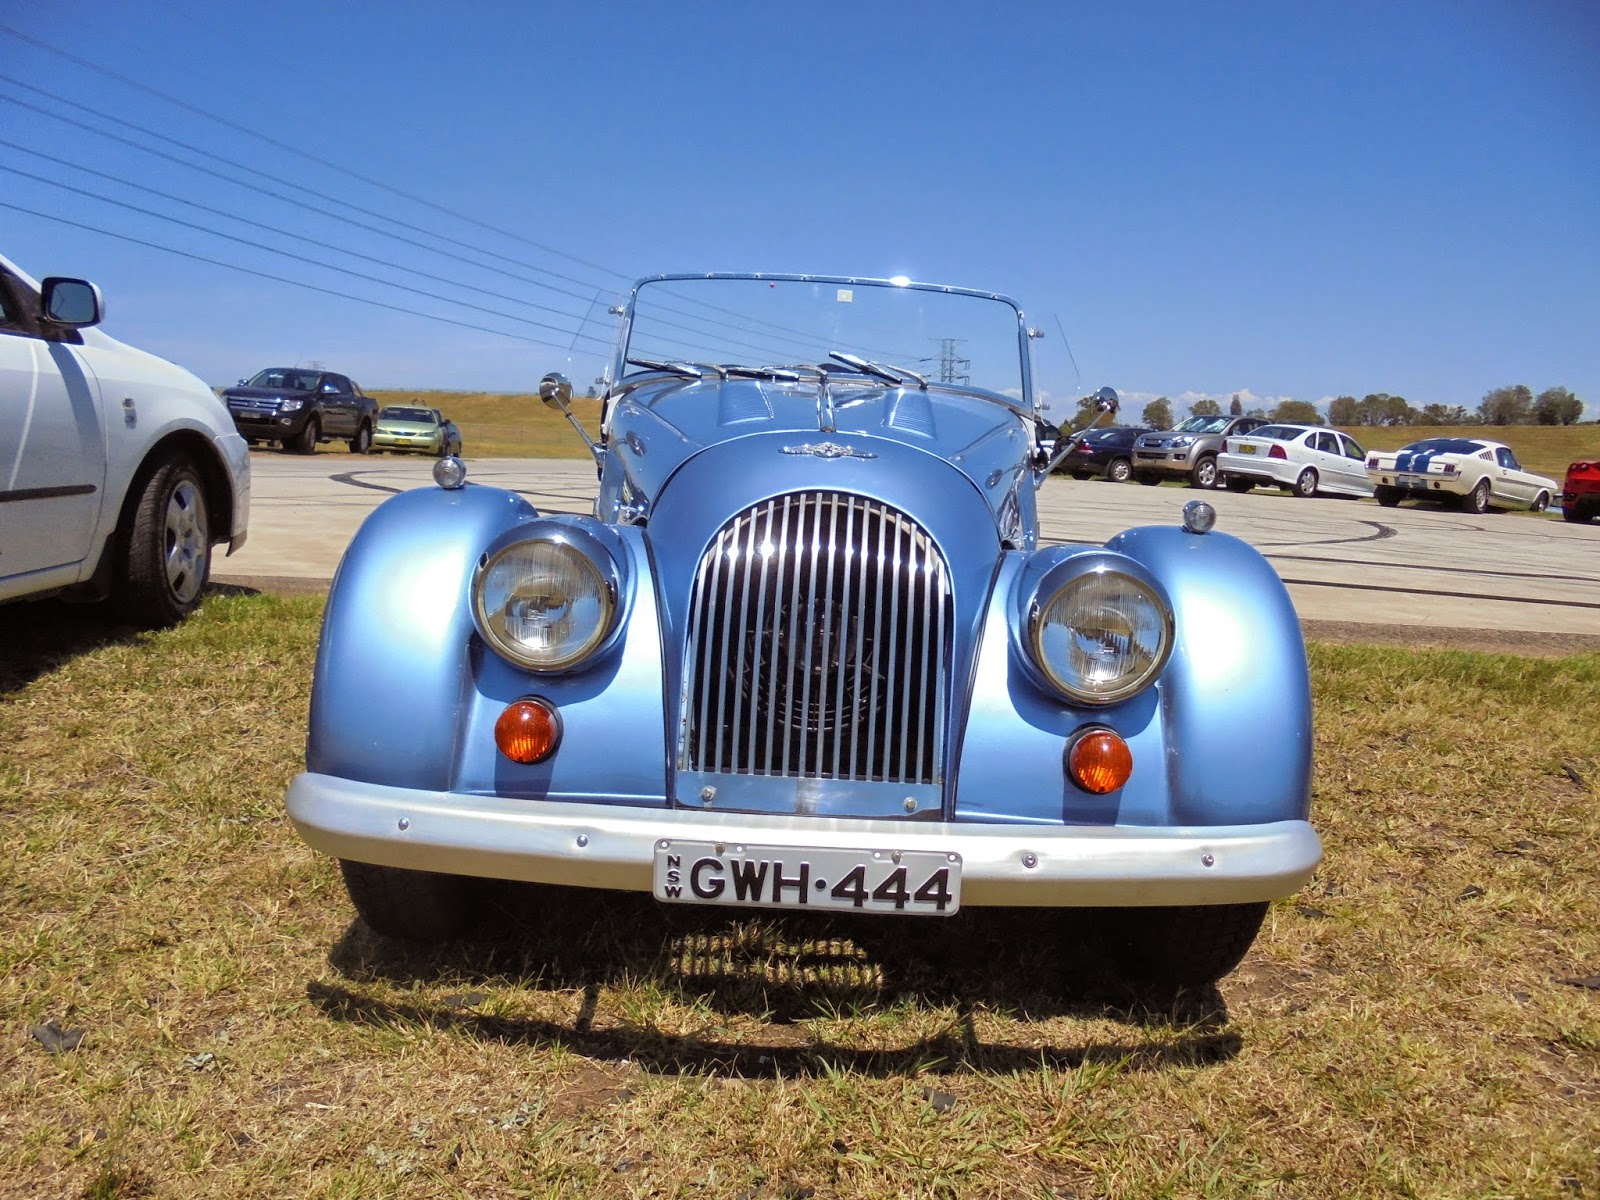 Aussie Old Parked Cars  1983 Morgan 4  4